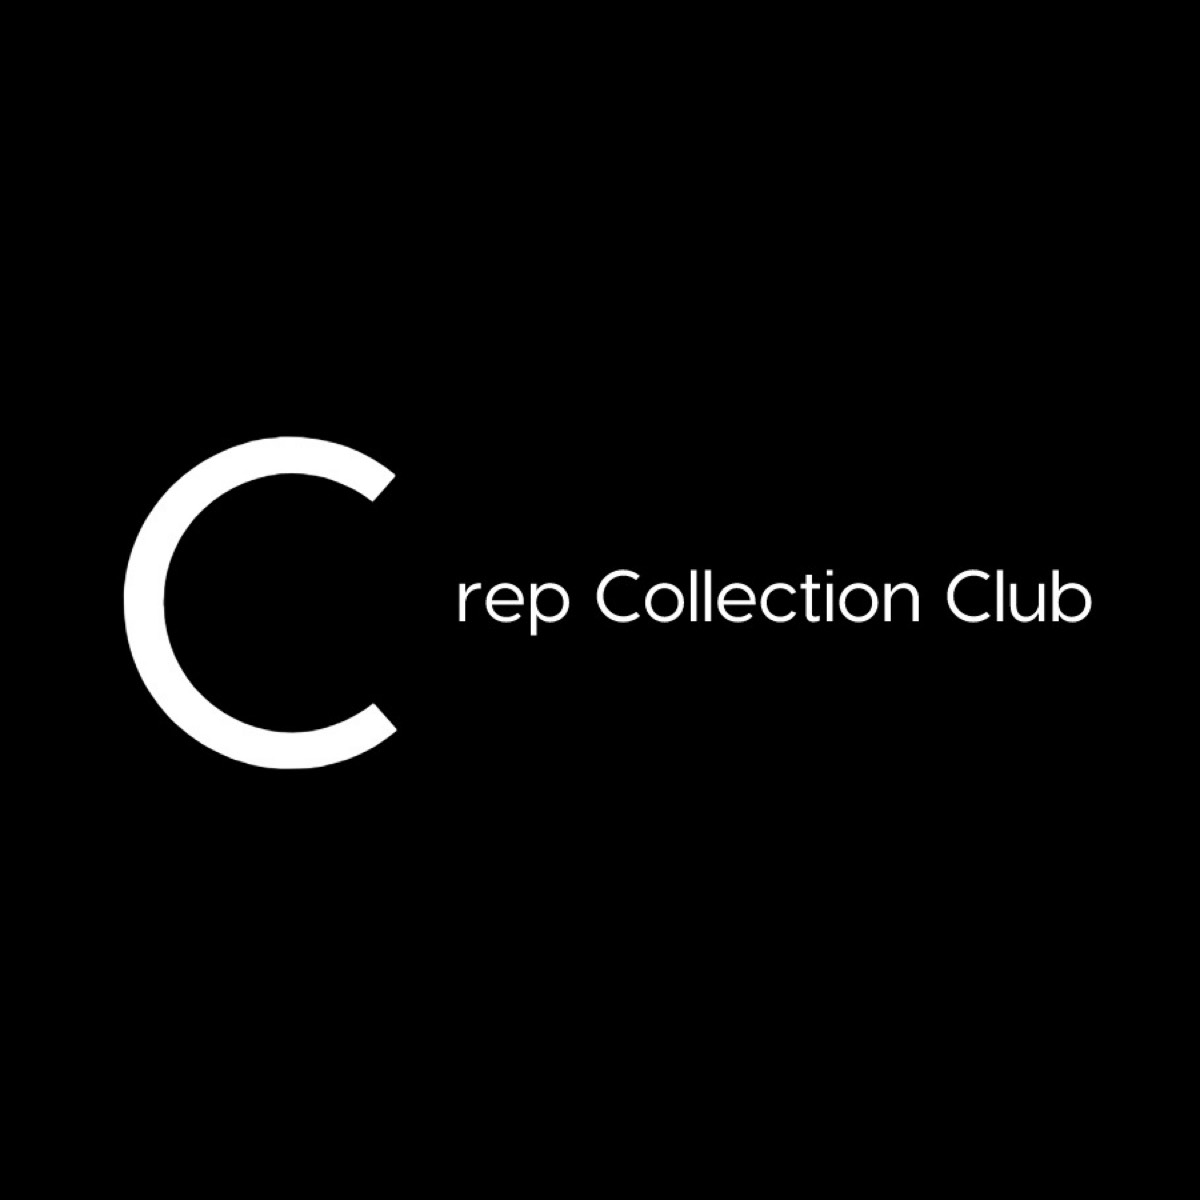 Bump profile picture for @crepcollectionclub